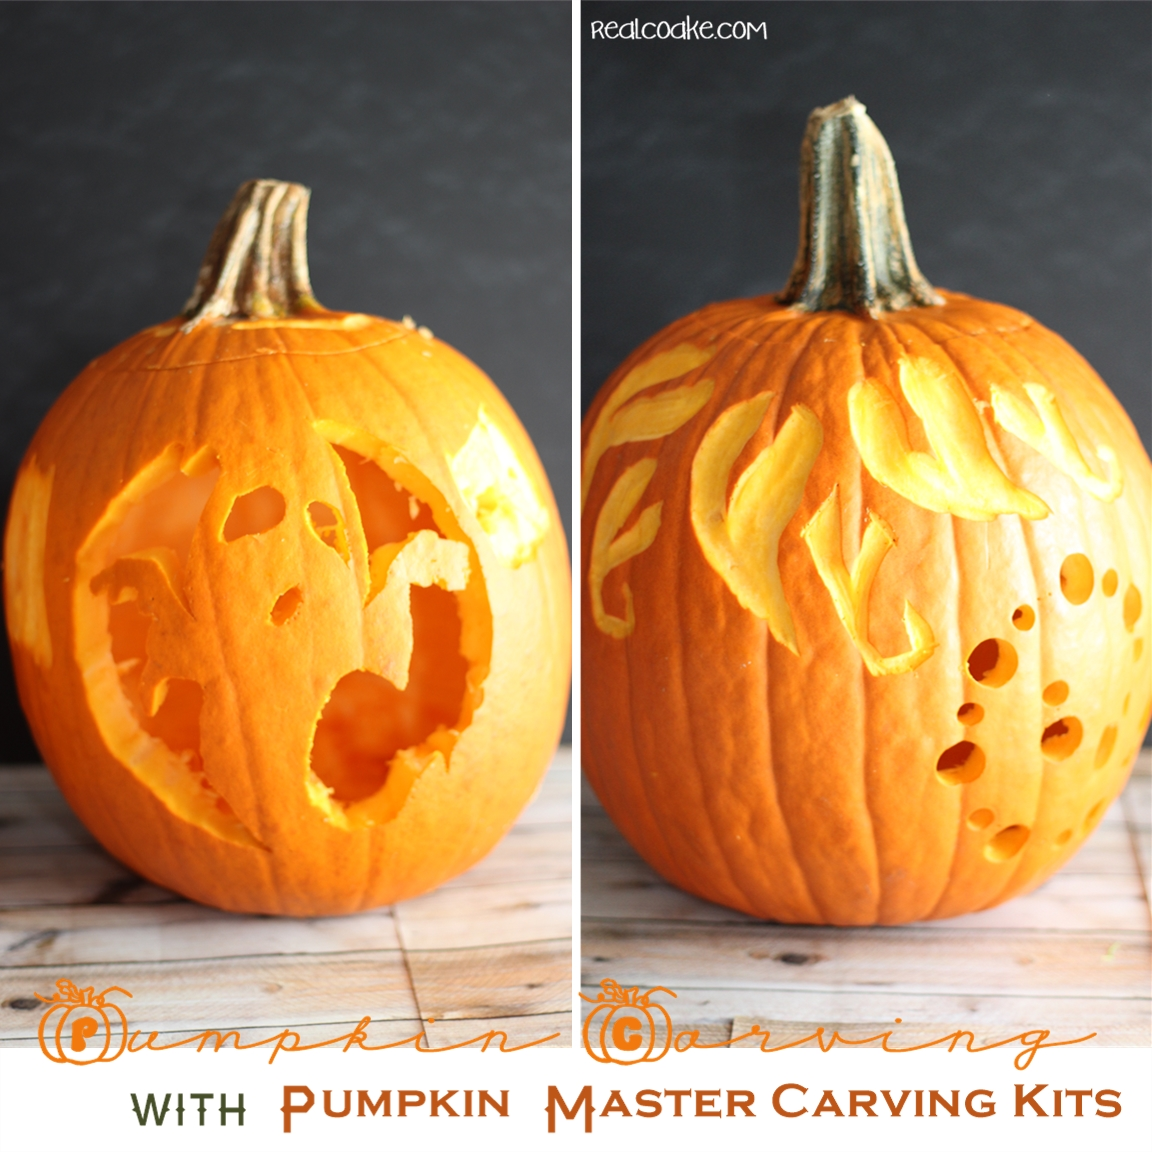 Family Pumpkin Carving Images - Reverse Search